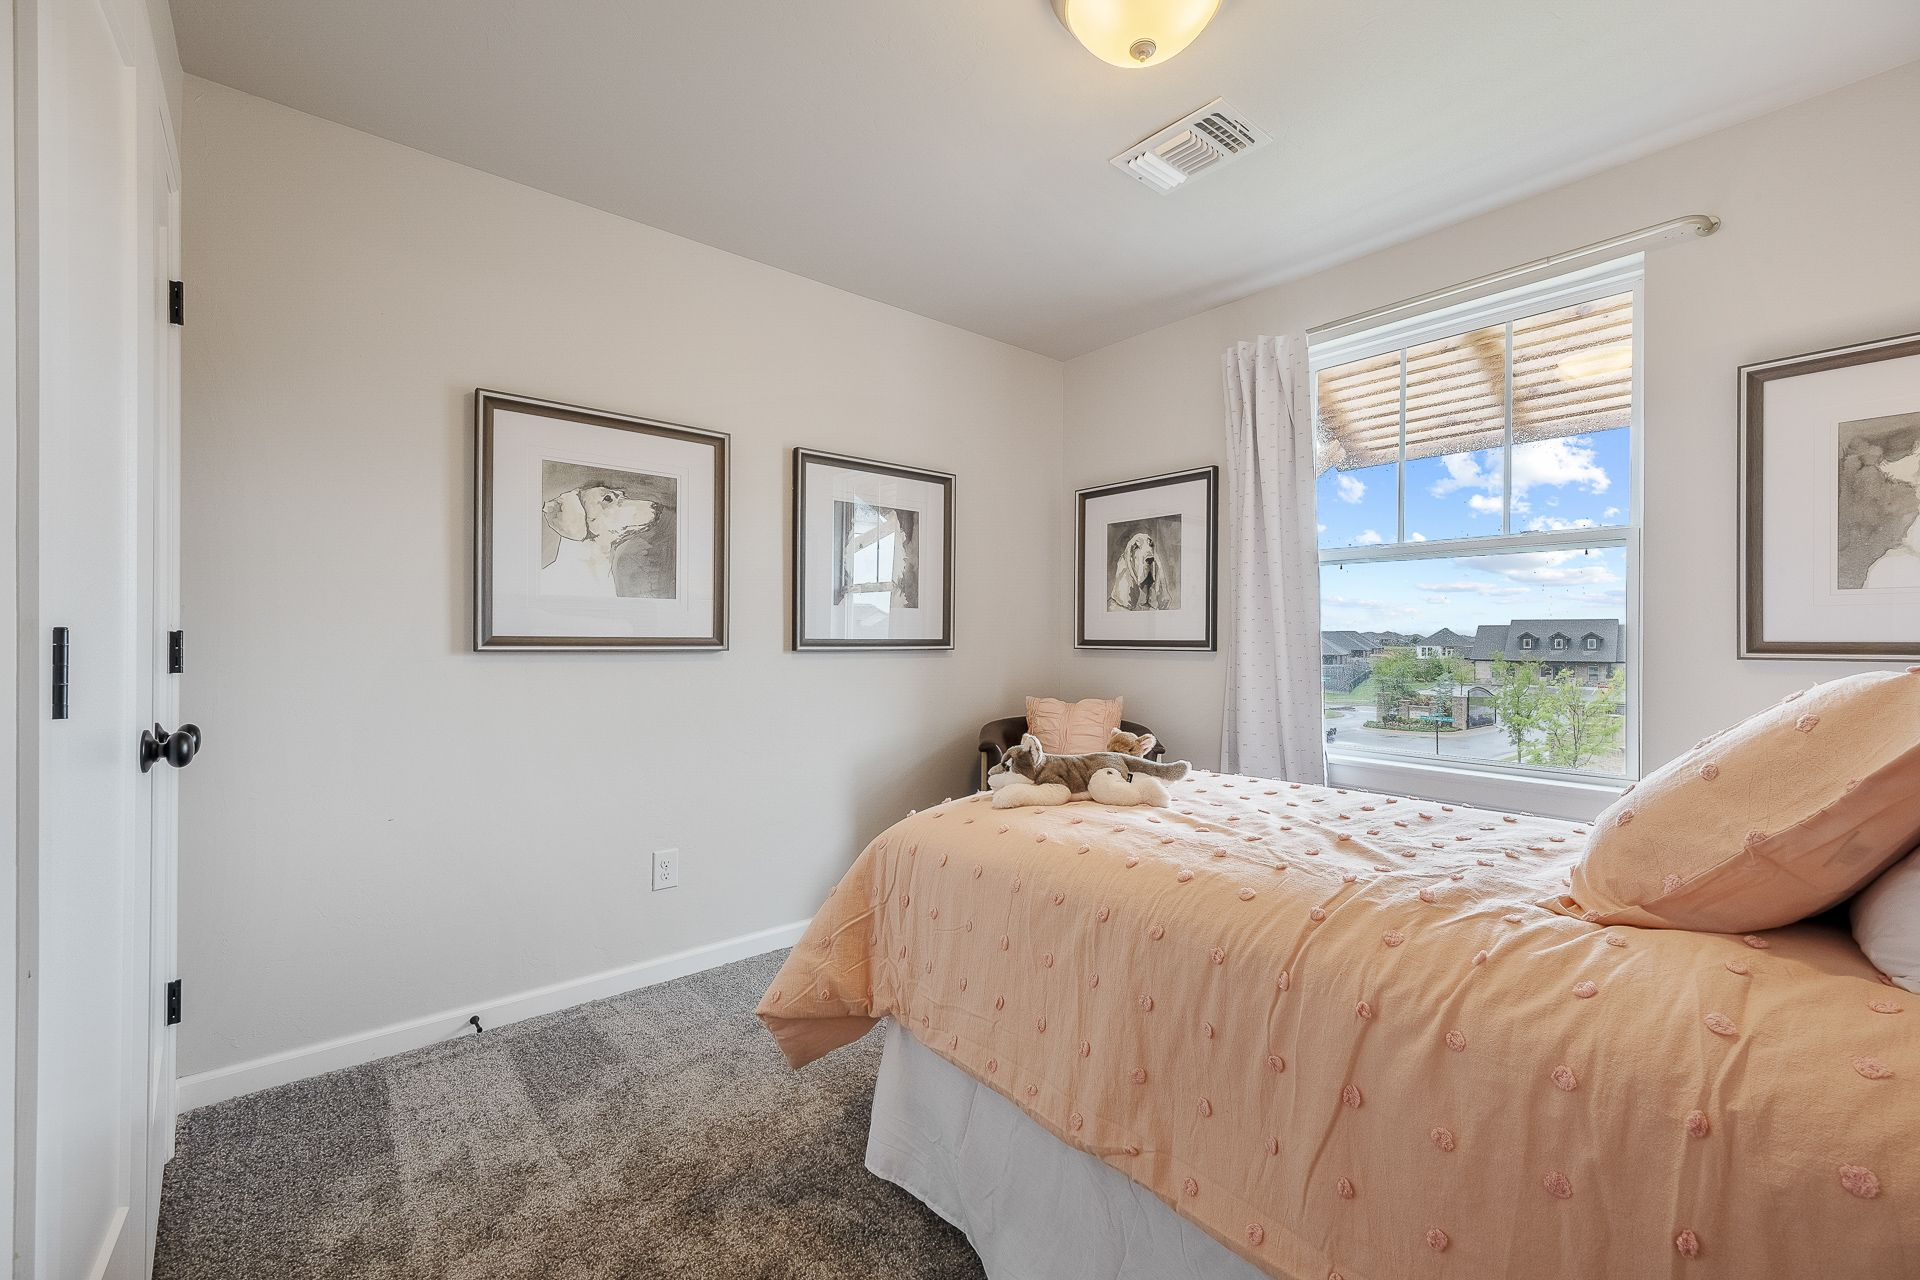 Bedroom featured in the Nottingham By Ideal Homes in Oklahoma City, OK